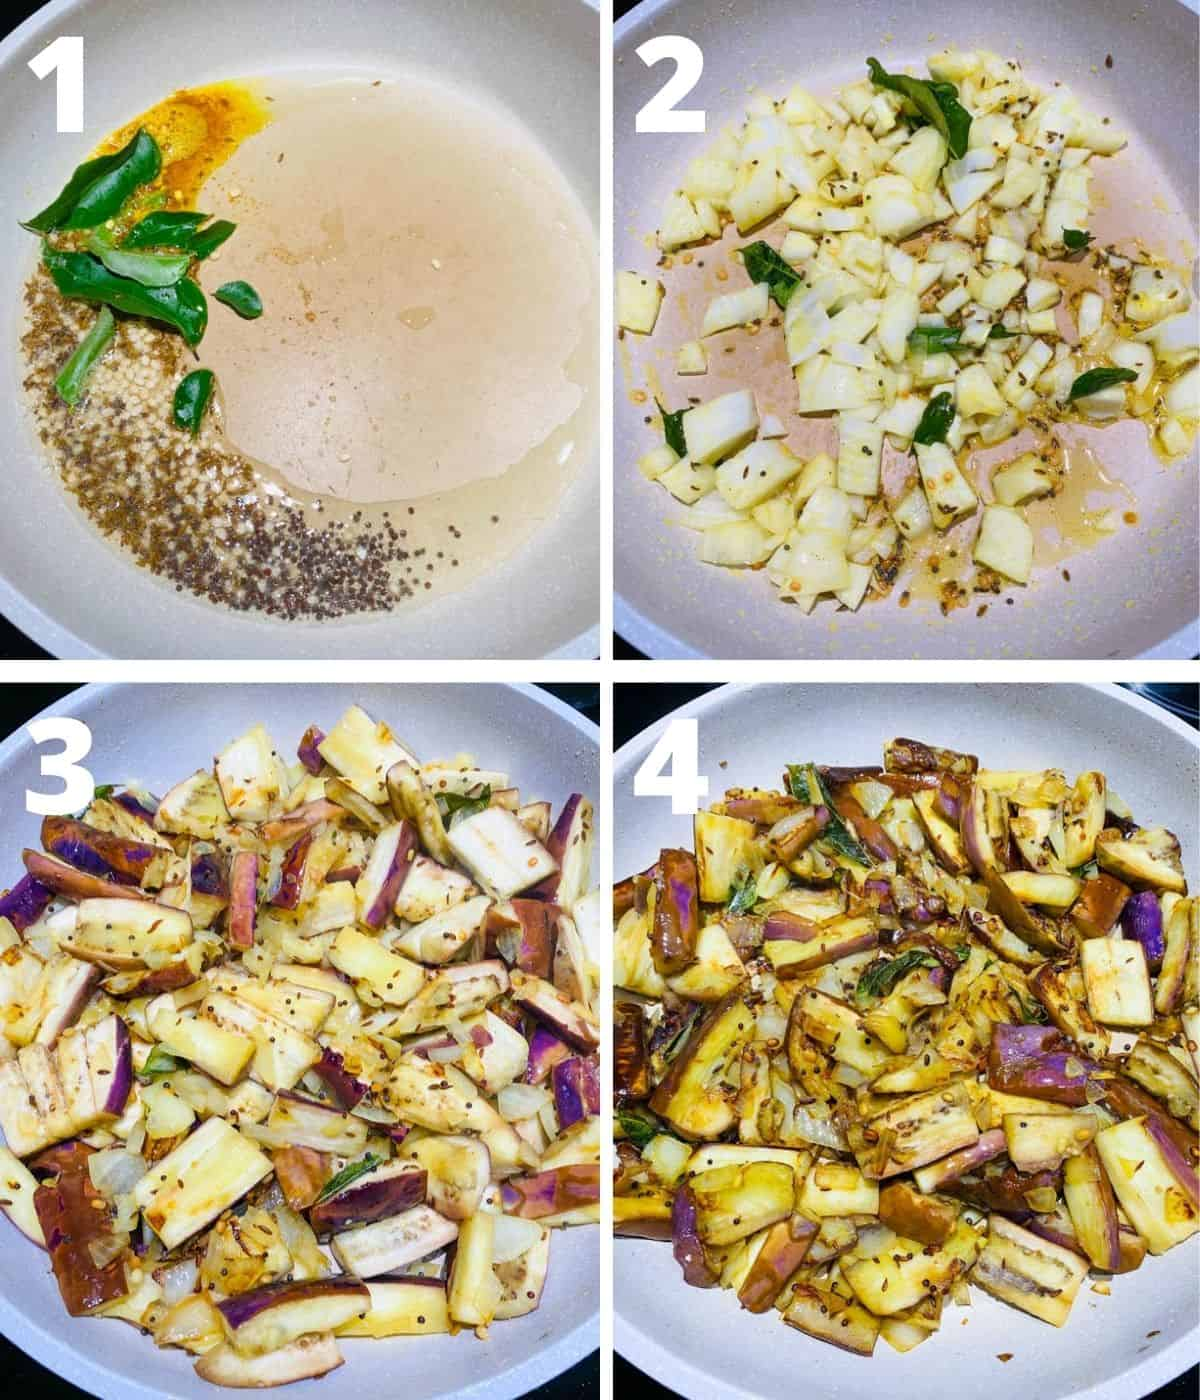 This is a 4 picture collage showing first four steps of making brinjal fry i.e upto cooking brinjal for some time before adding the spice paste.